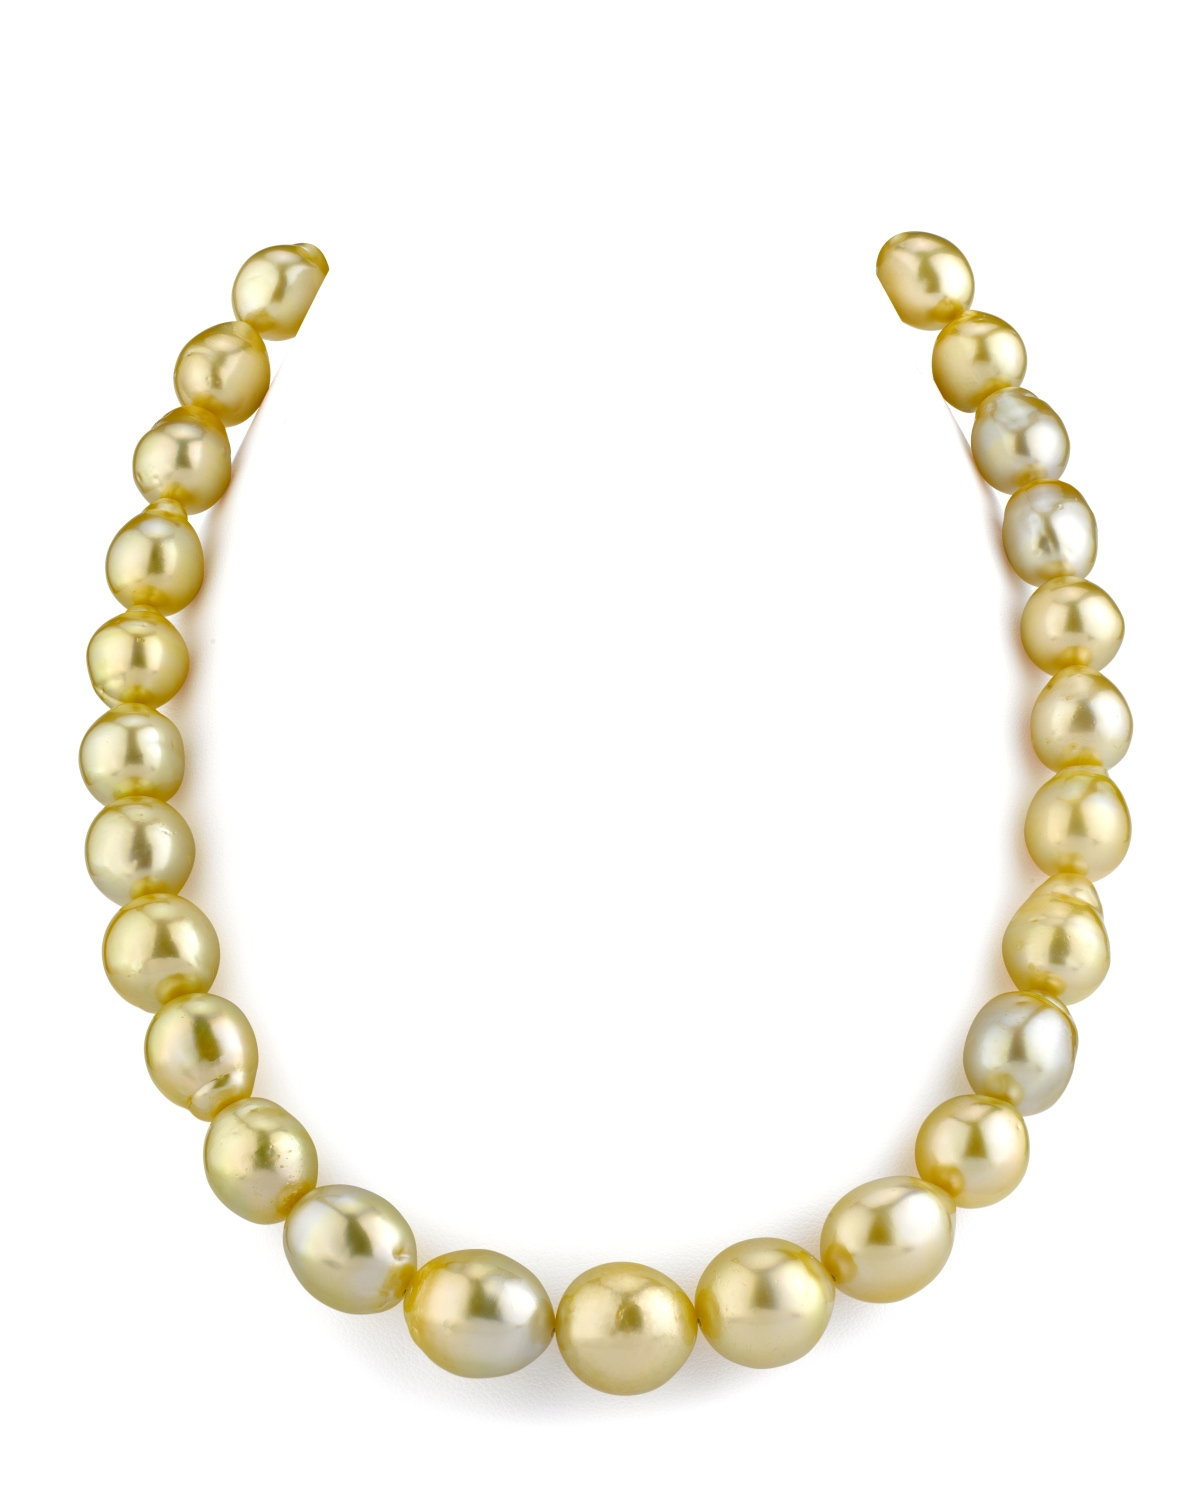 11-13mm Drop-Shape Golden South Sea Pearl Necklace